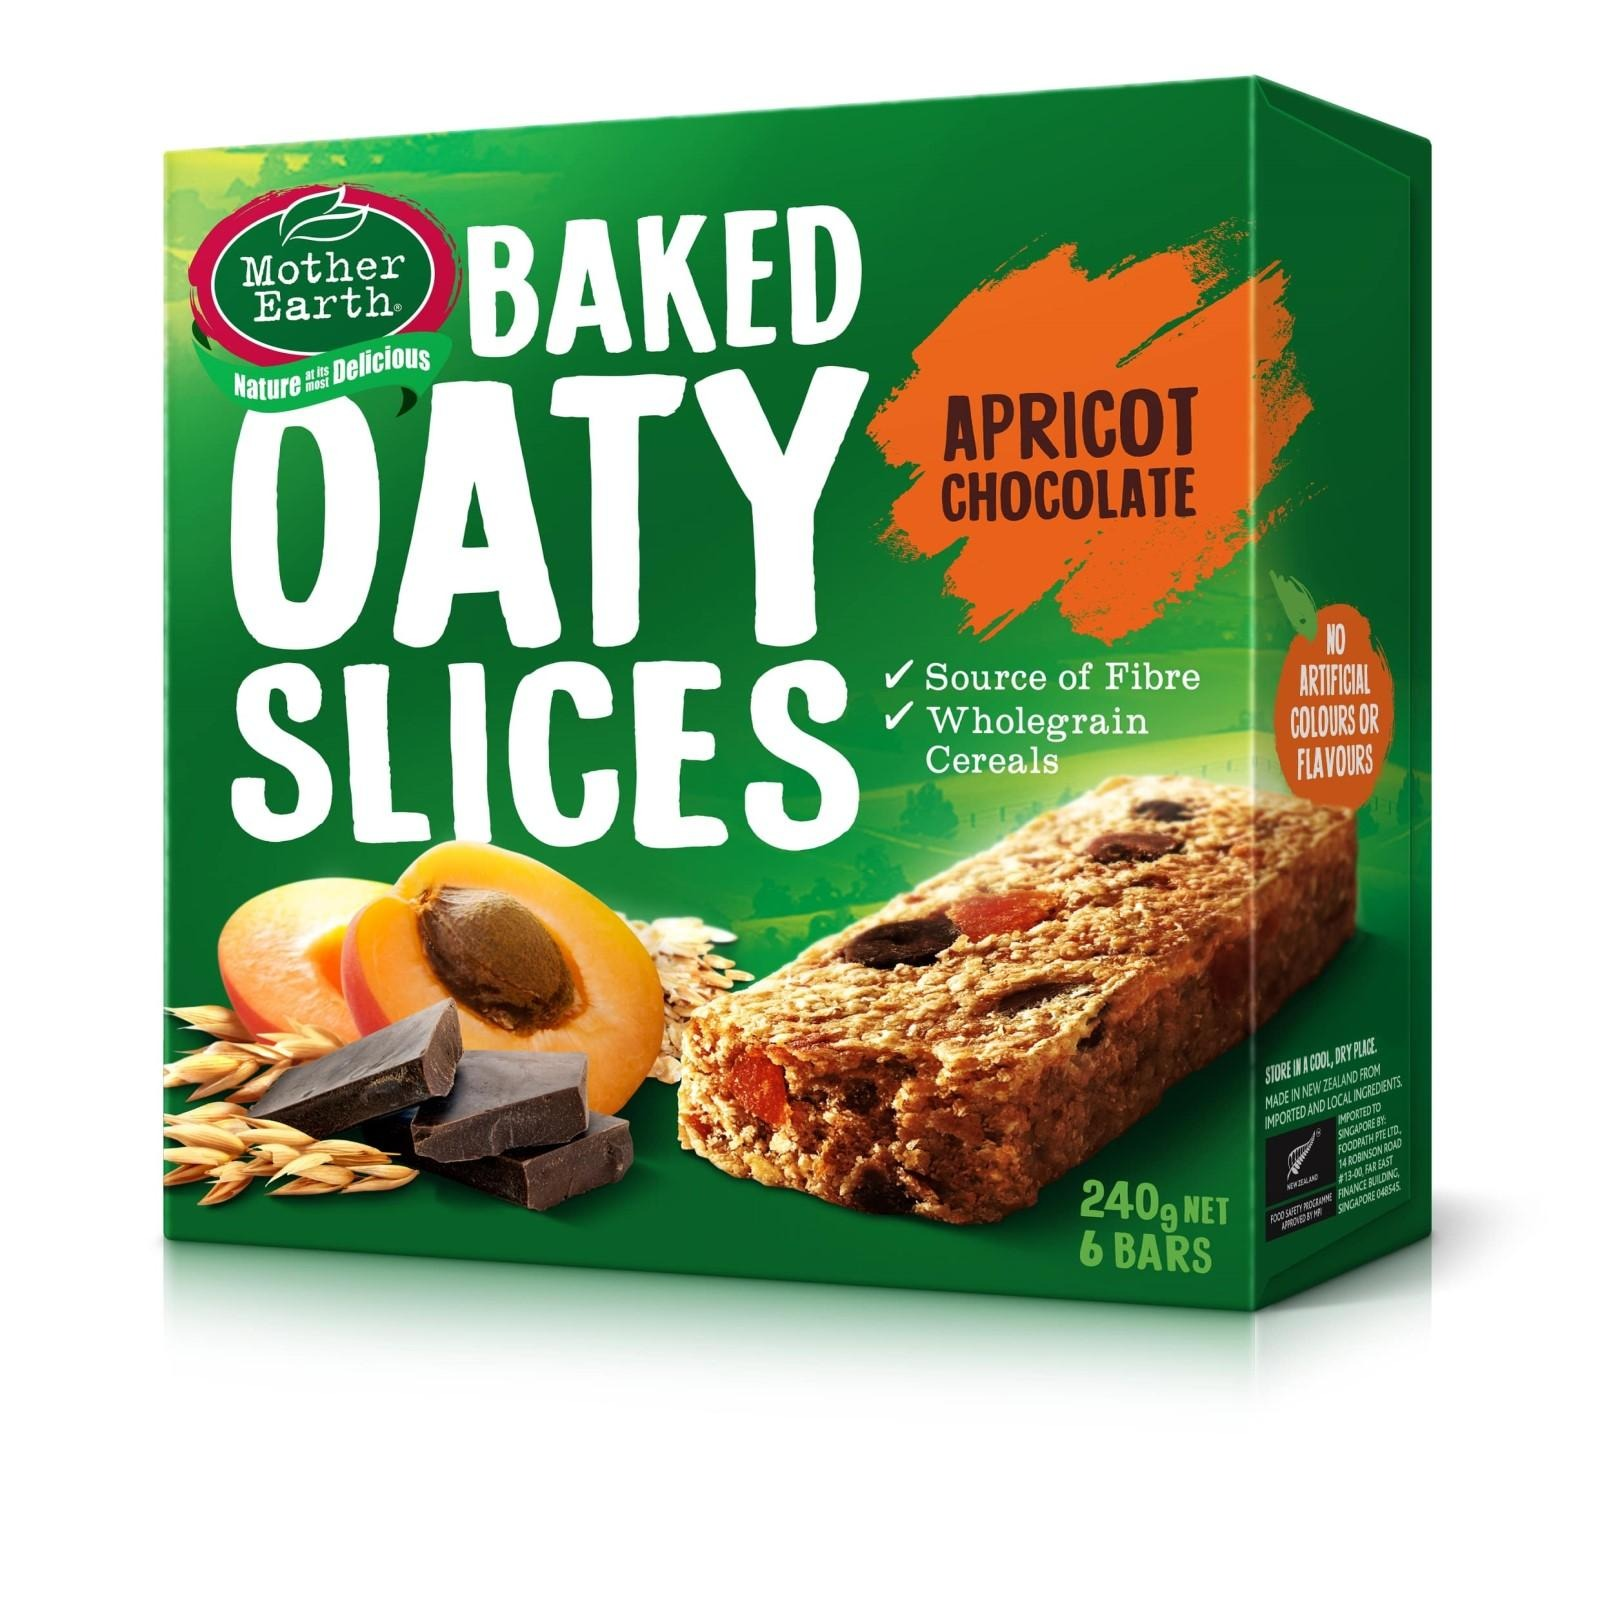 Mother Earth Baked Oaty Slice Apricot and Chocolate